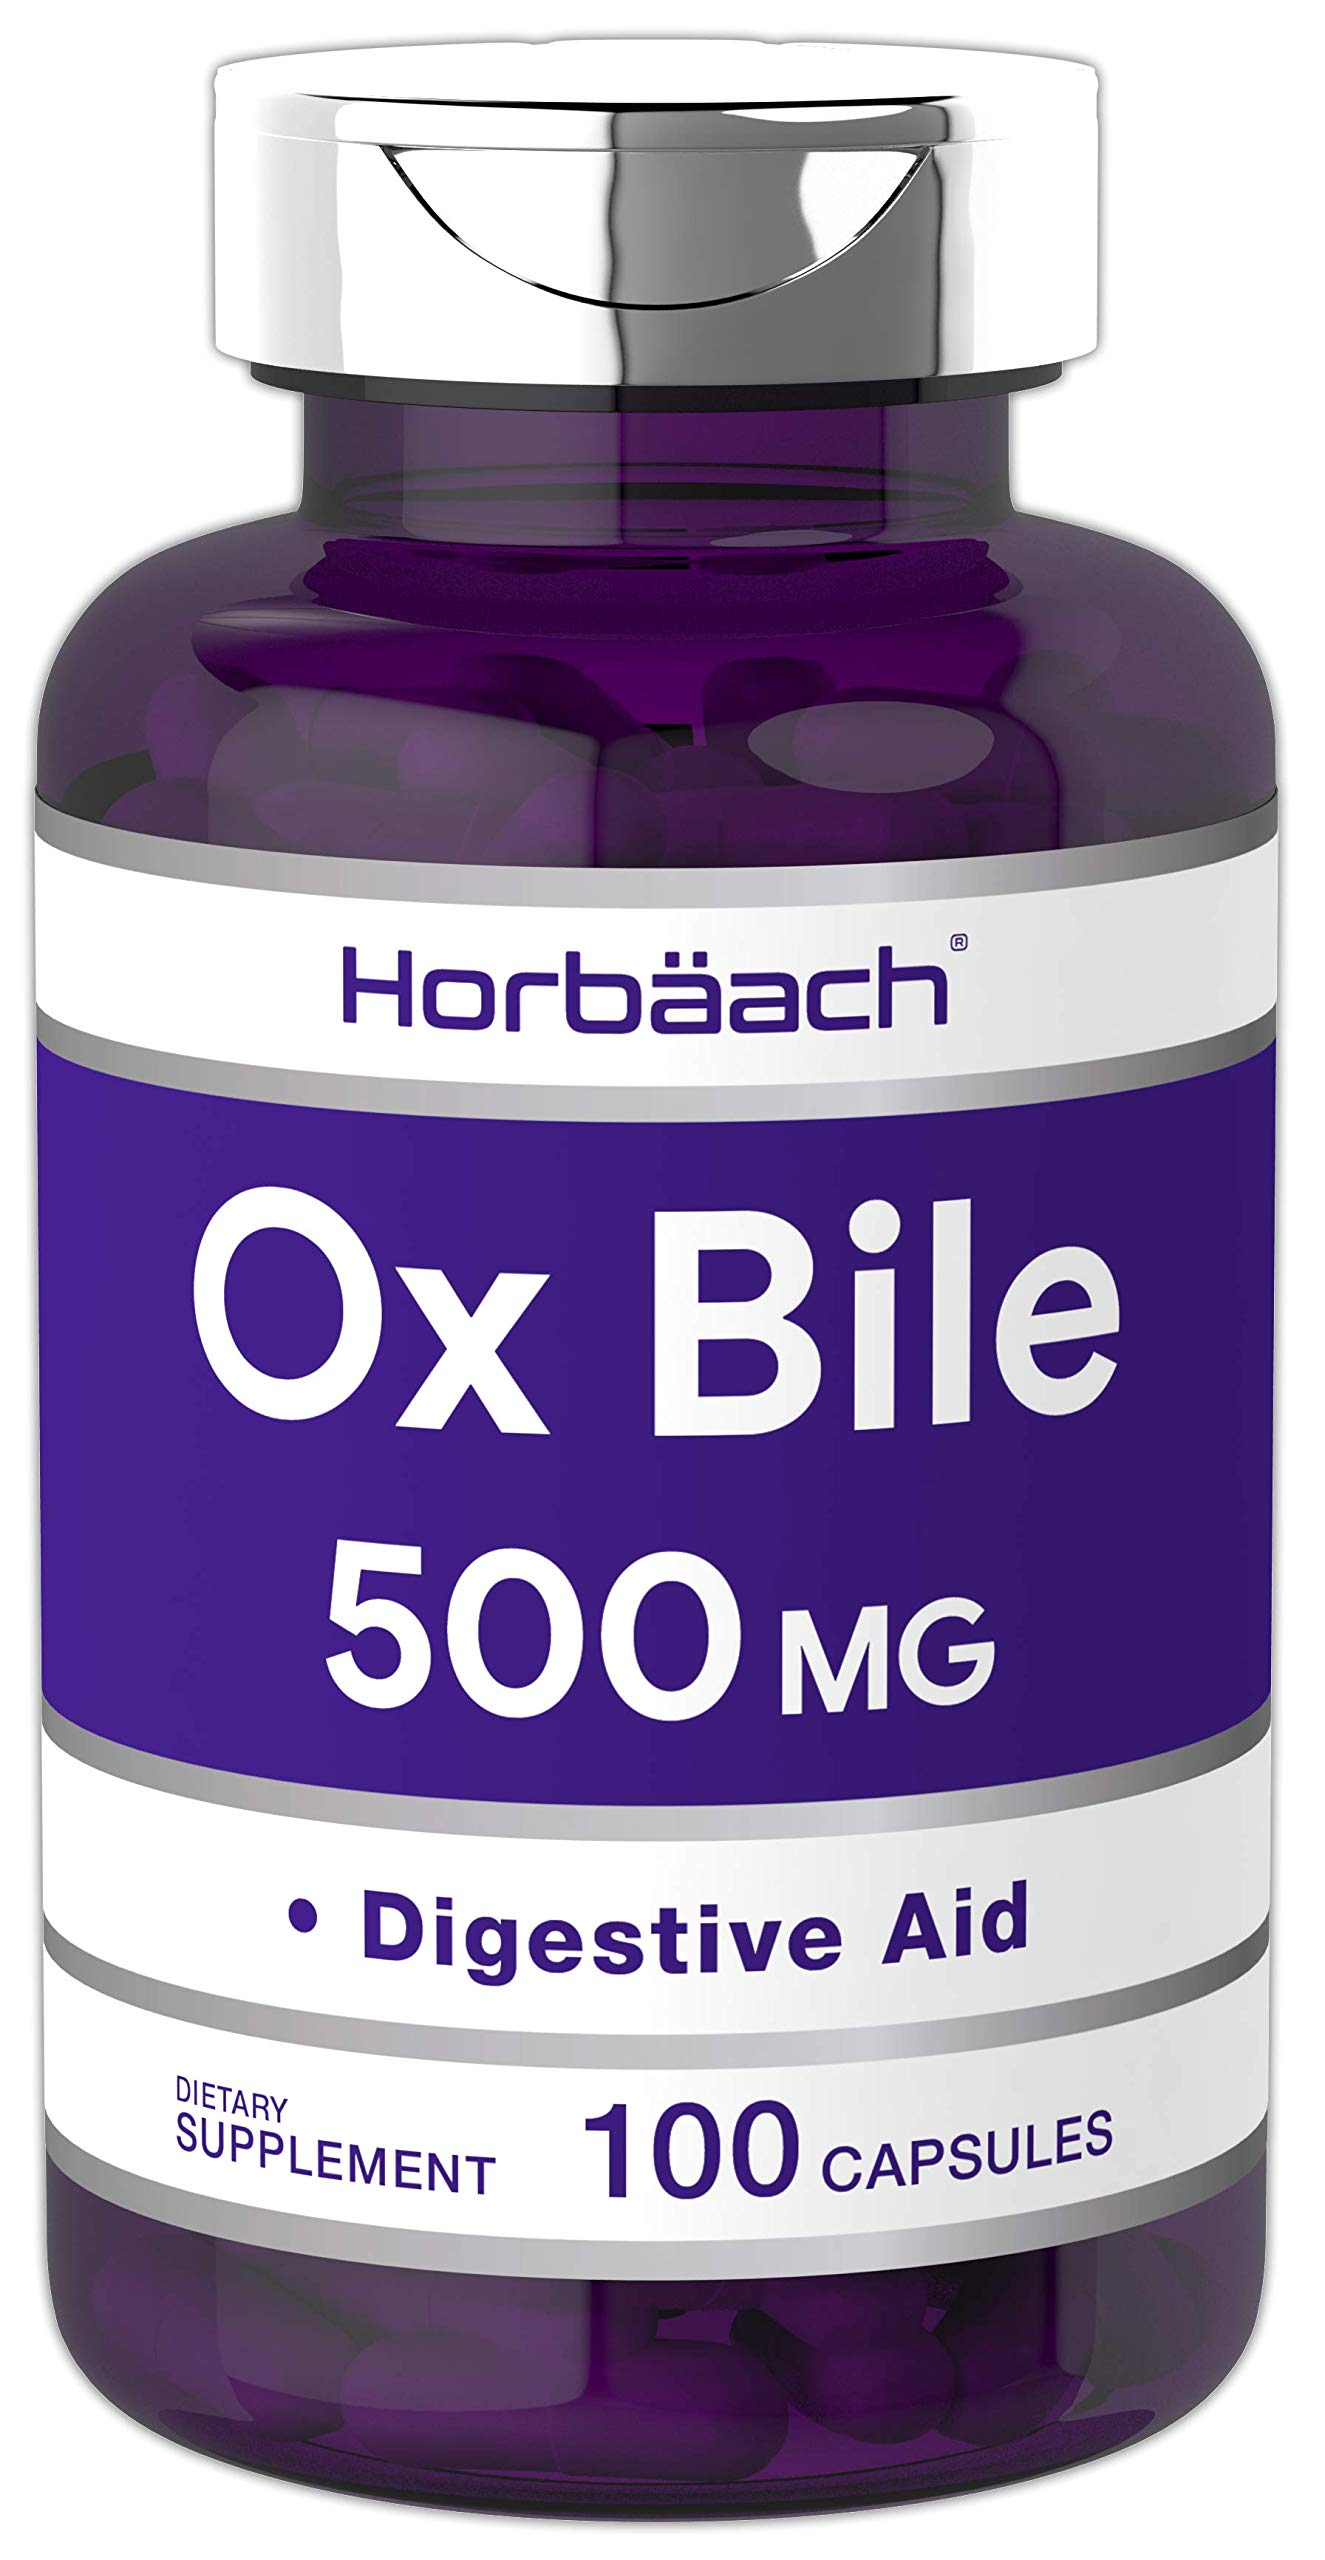 Horbaach Ox Bile 500 mg 100 Capsules   Non-GMO & Gluten Free   Digestive Enzymes Supplement, Purified Bile Salts for Gallbladder by Horbäach